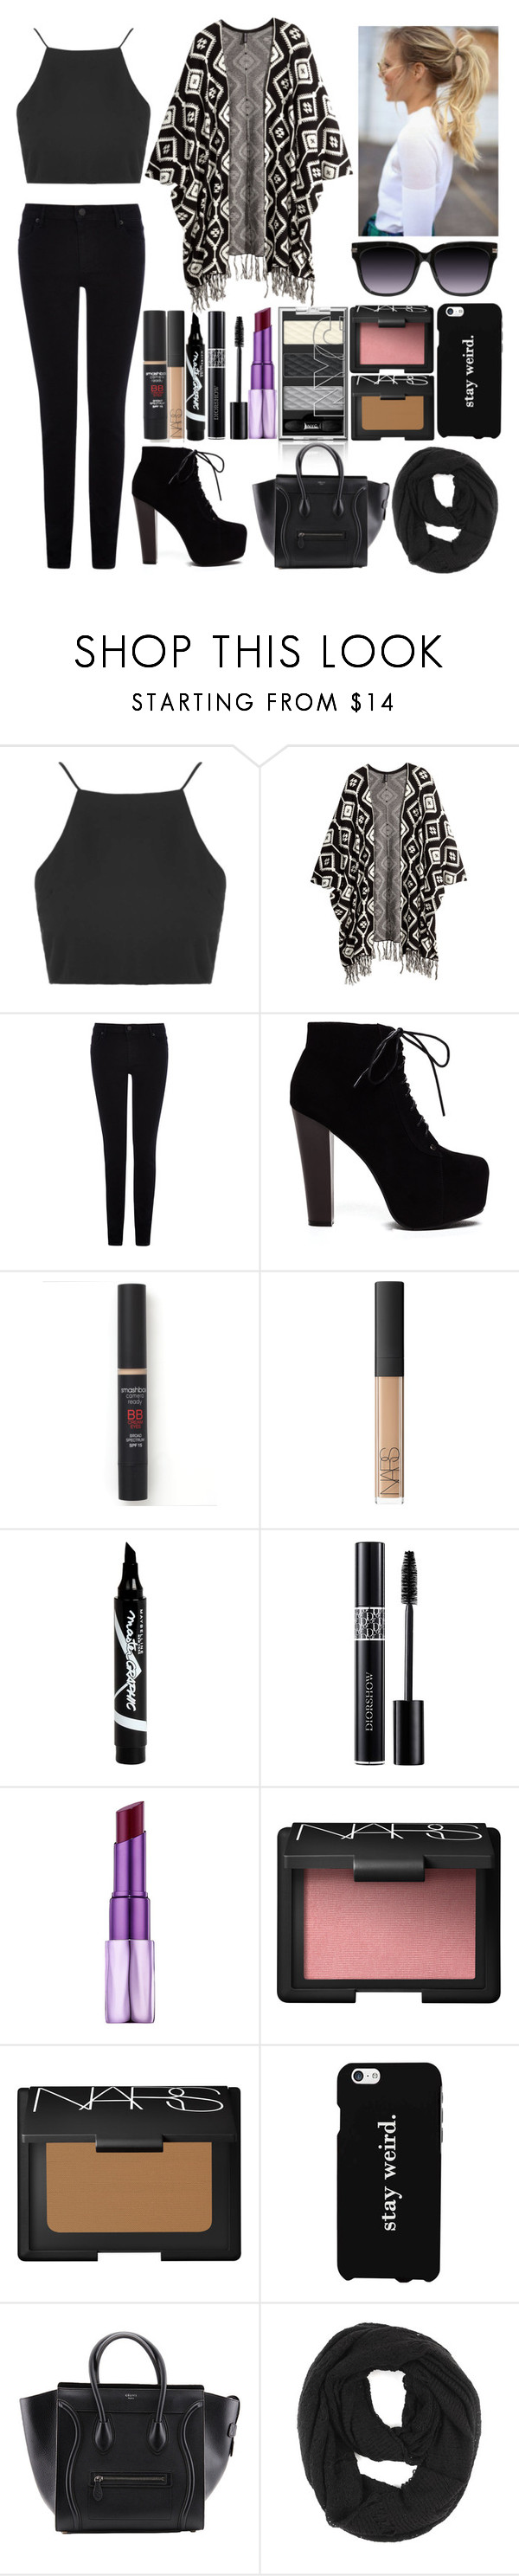 """""""Untitled #76"""" by directioner1608 ❤ liked on Polyvore featuring Topshop, H&M, Warehouse, Smashbox, Maybelline, Urban Decay, NARS Cosmetics, LG, Paula Bianco and morelikesjul"""